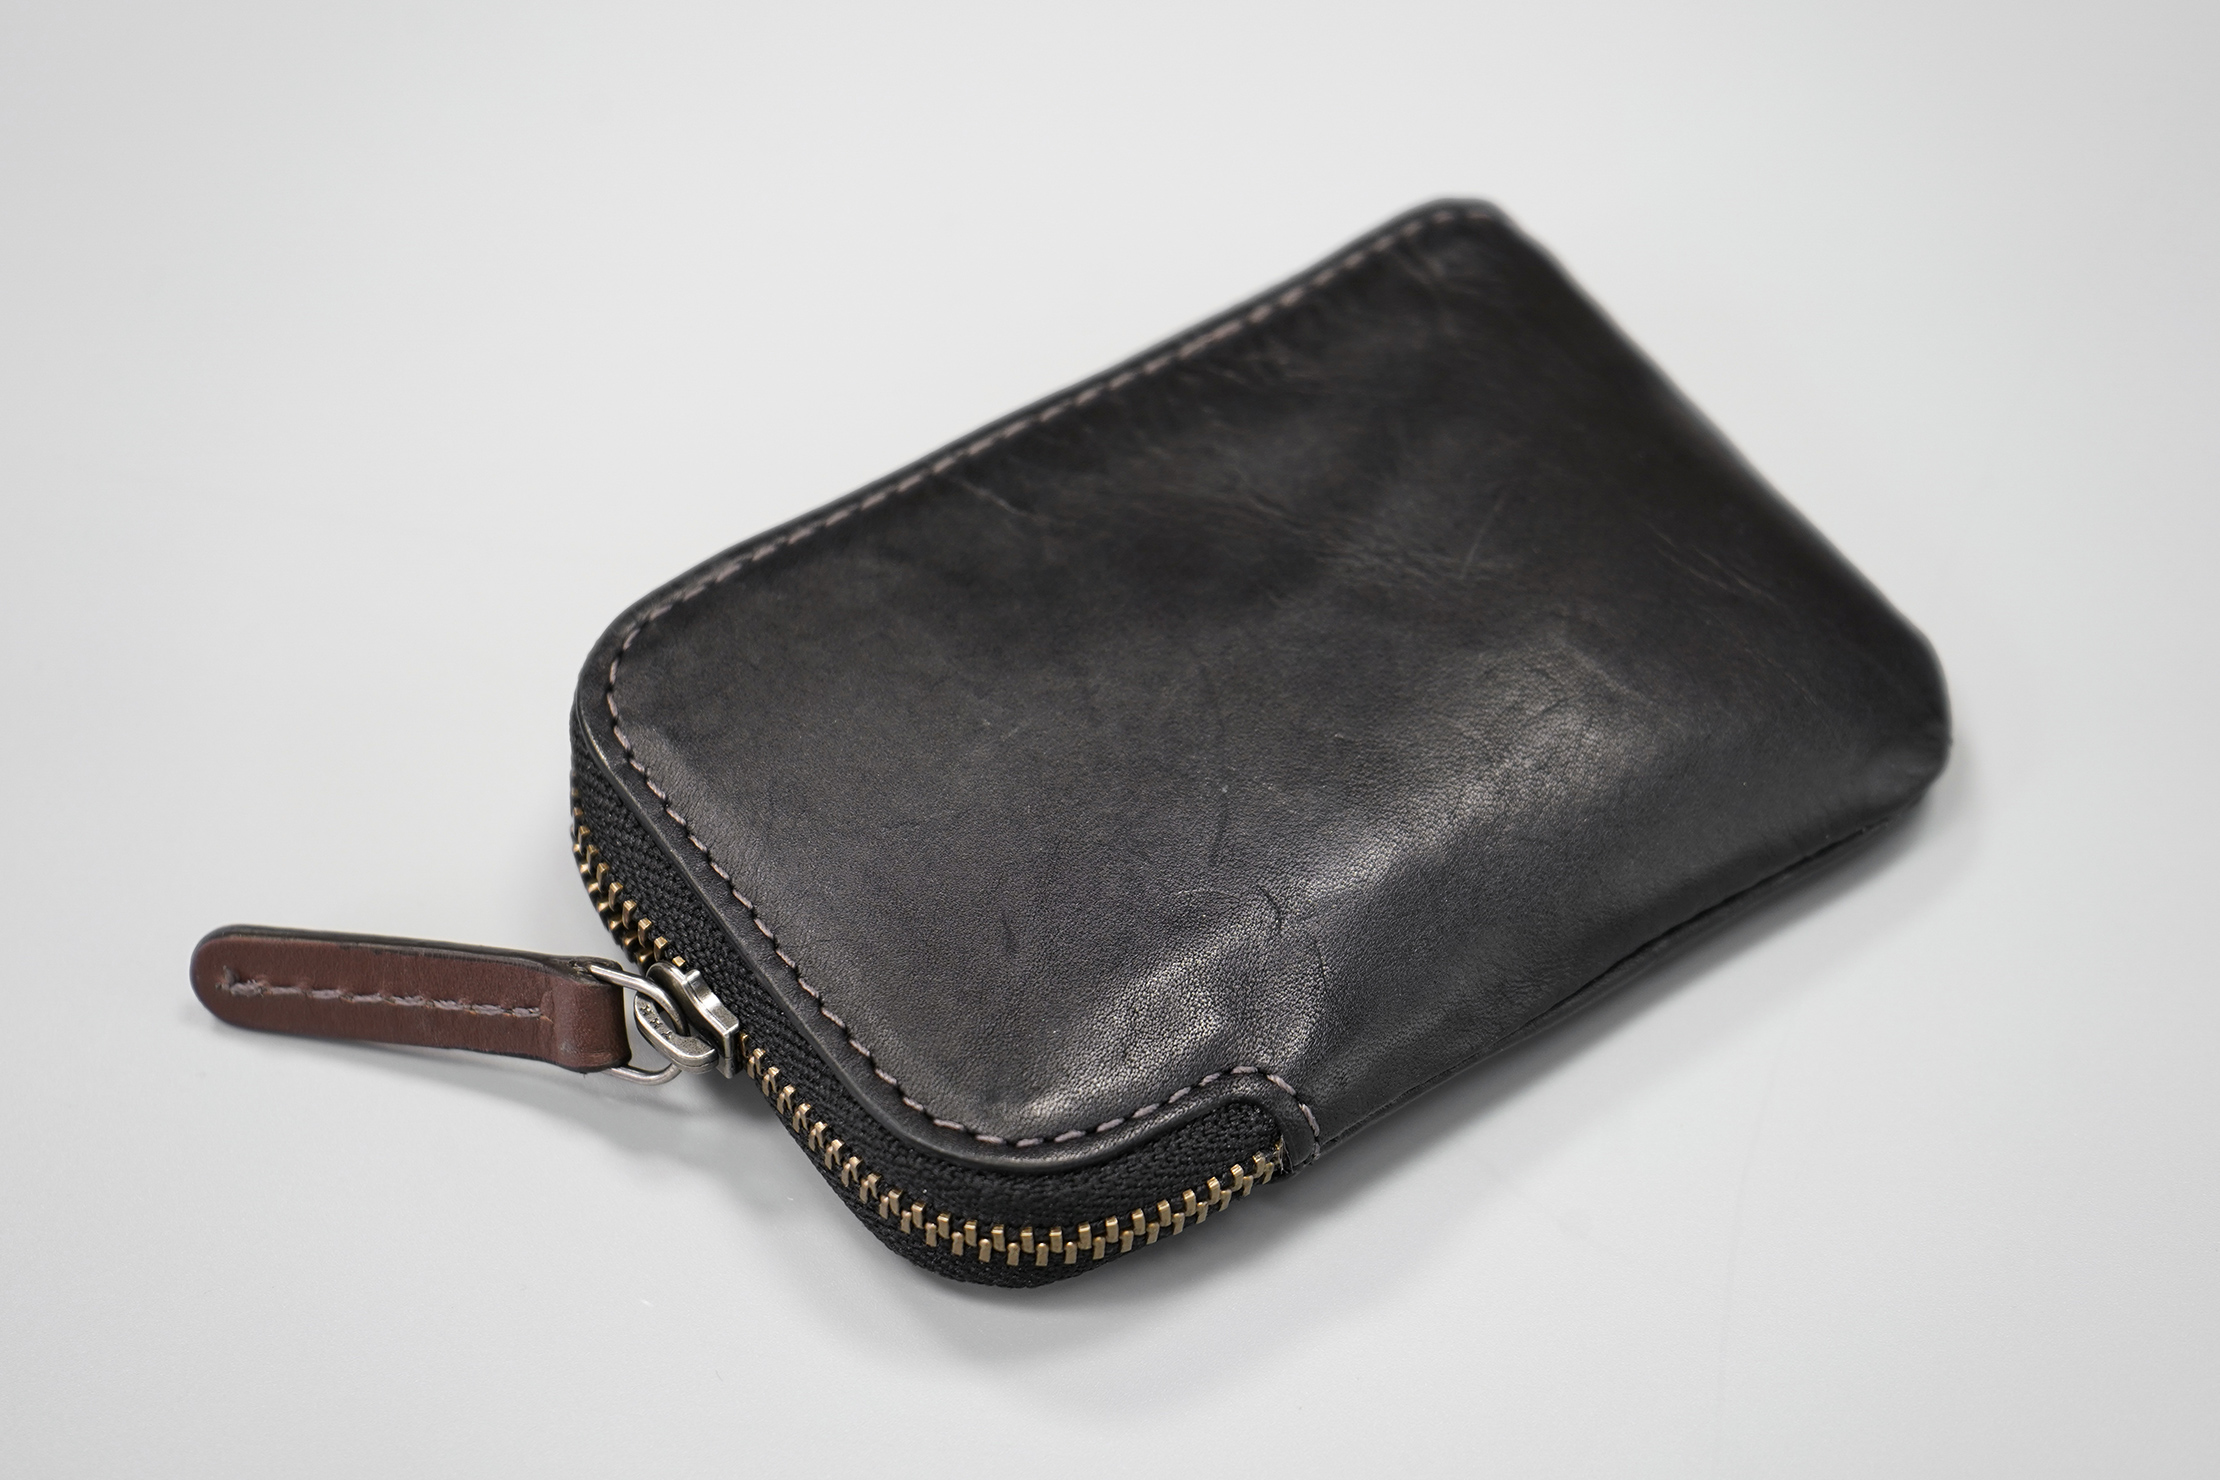 Bellroy Card Pocket Leather